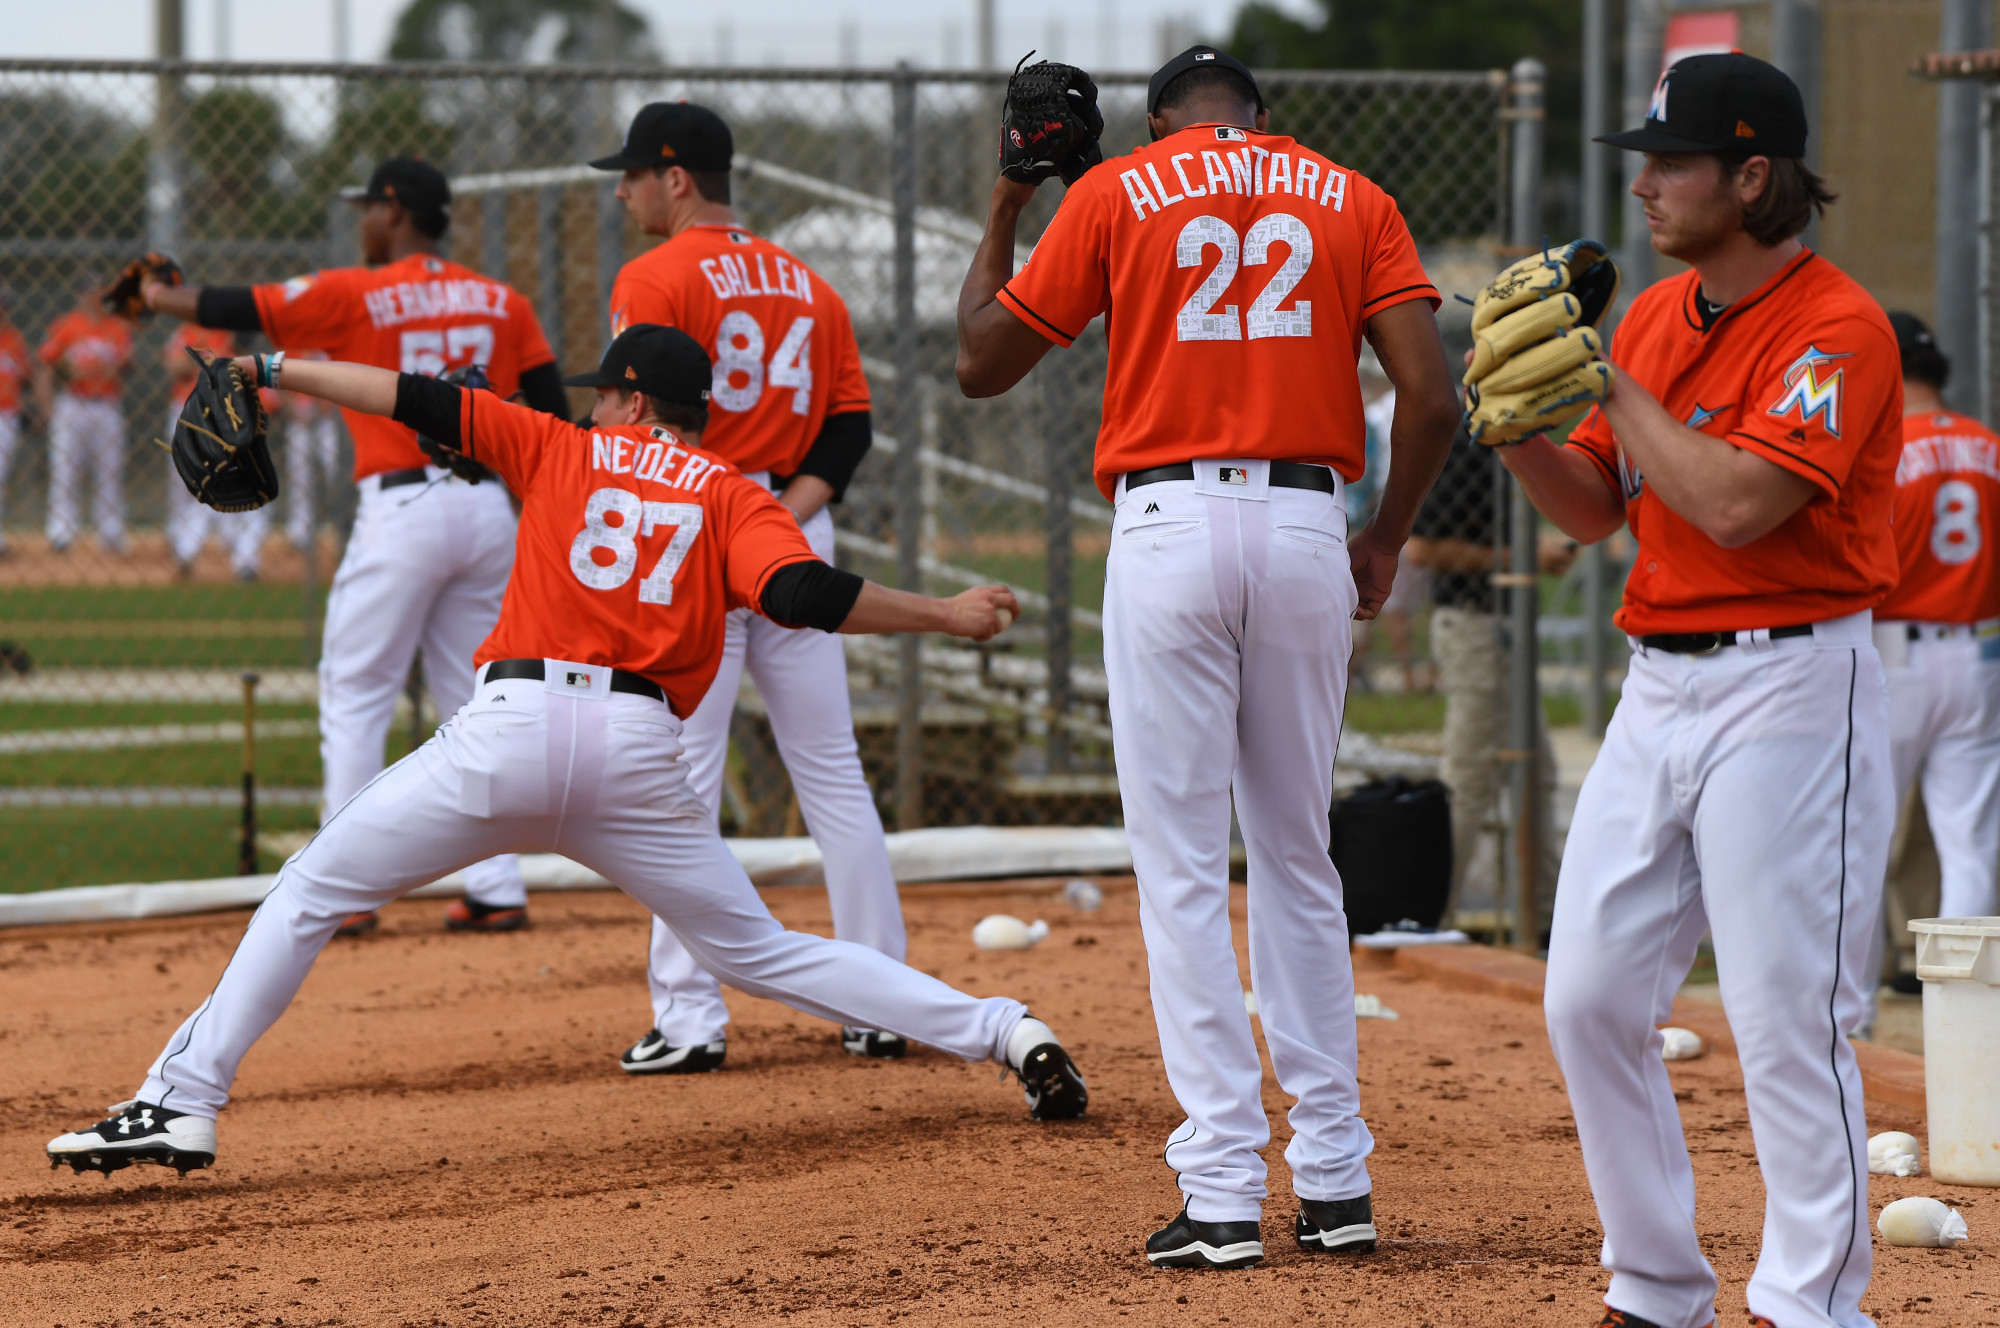 Sfl-marlins-pitchers-and-catchers-report-to-jupiter-20180214